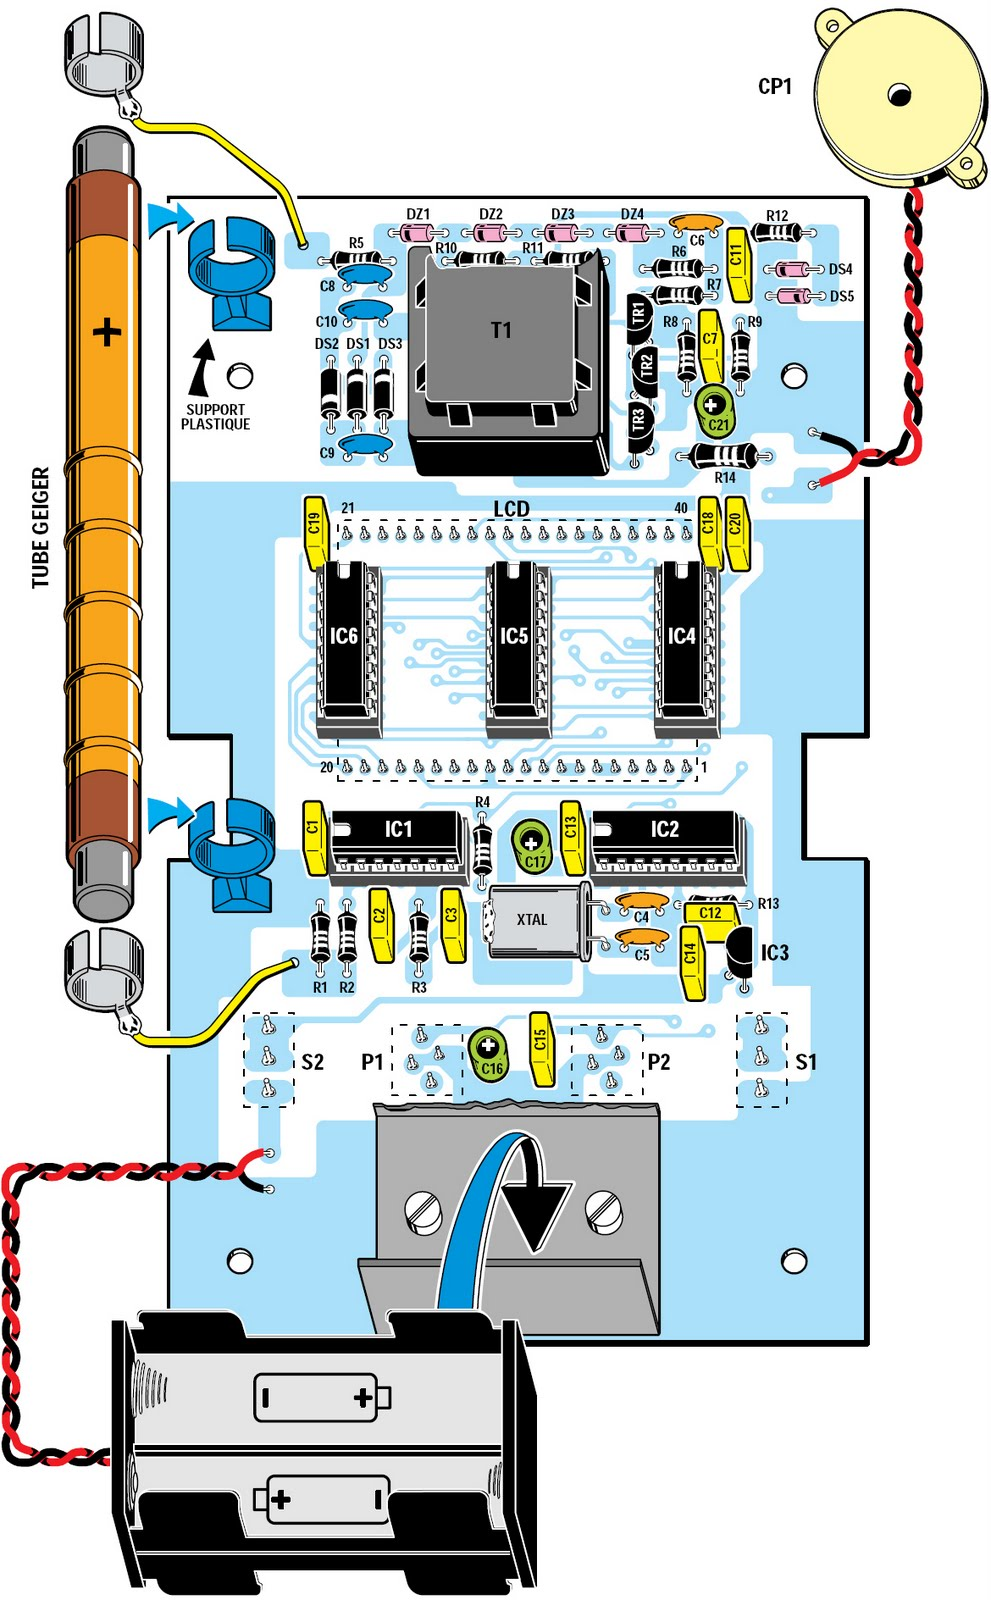 Snl Fart Commercial Magic Mouth Geiger Counter Audio Circuit Board 8 Comments To Figure 10 Implementation Plan Of Components The Other Side Pcb As You Can See Does Not Present Any Difficulty